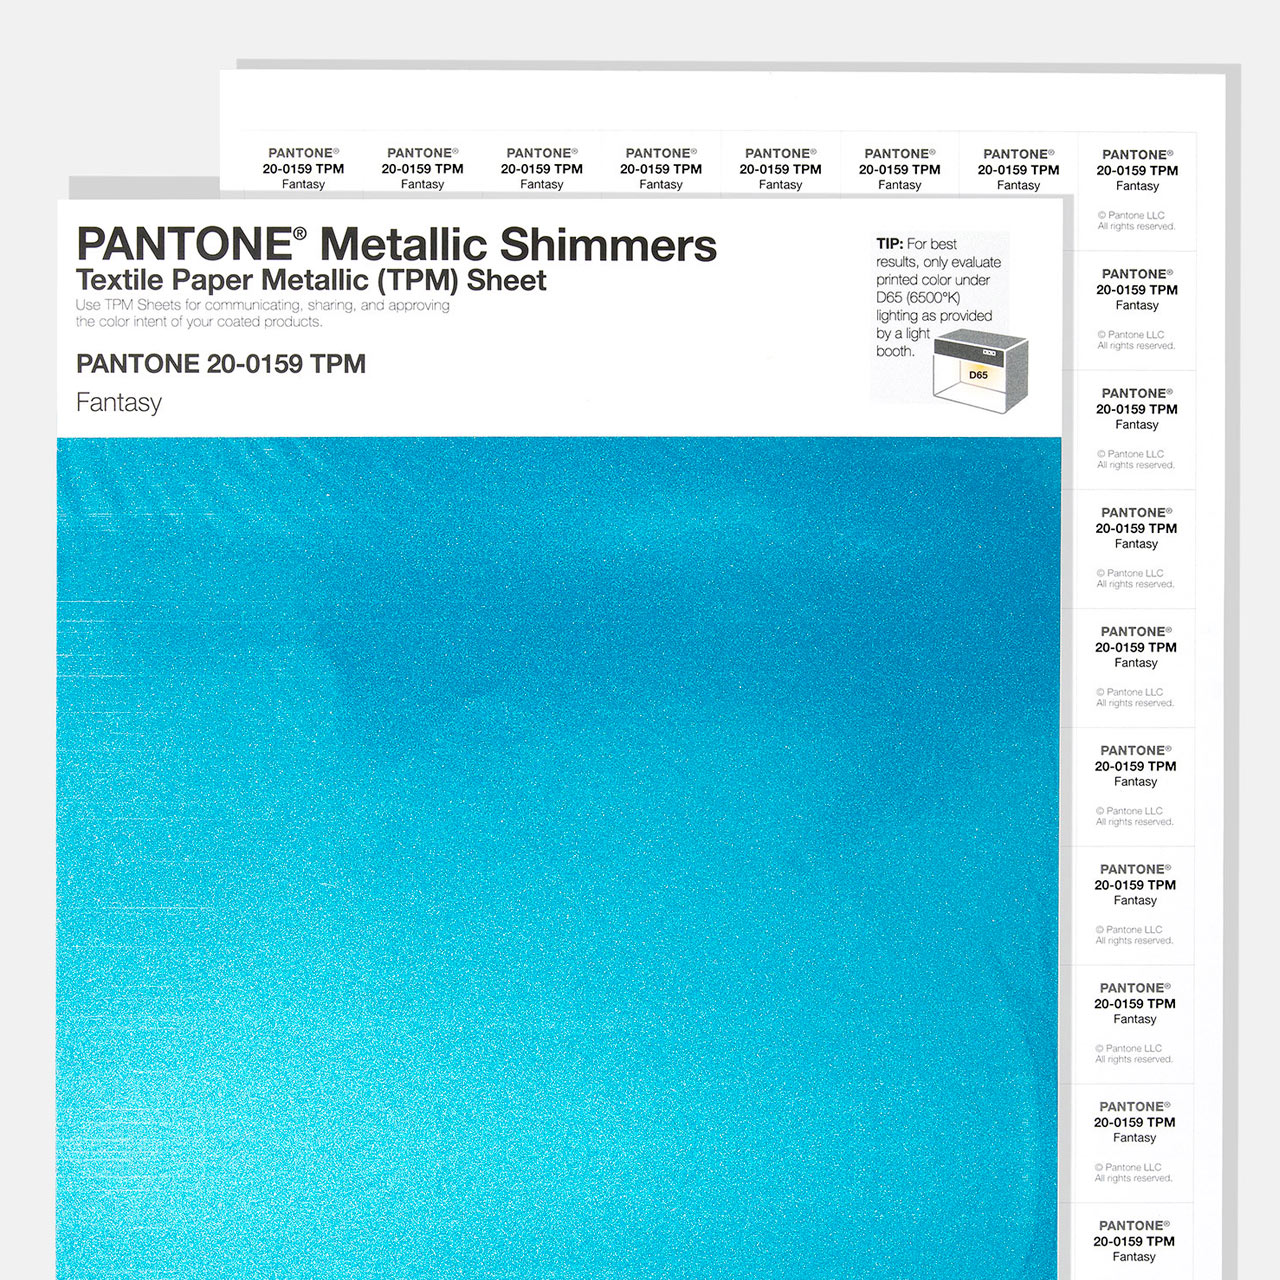 Pantone TMP Sheets - Metallic Shimmers